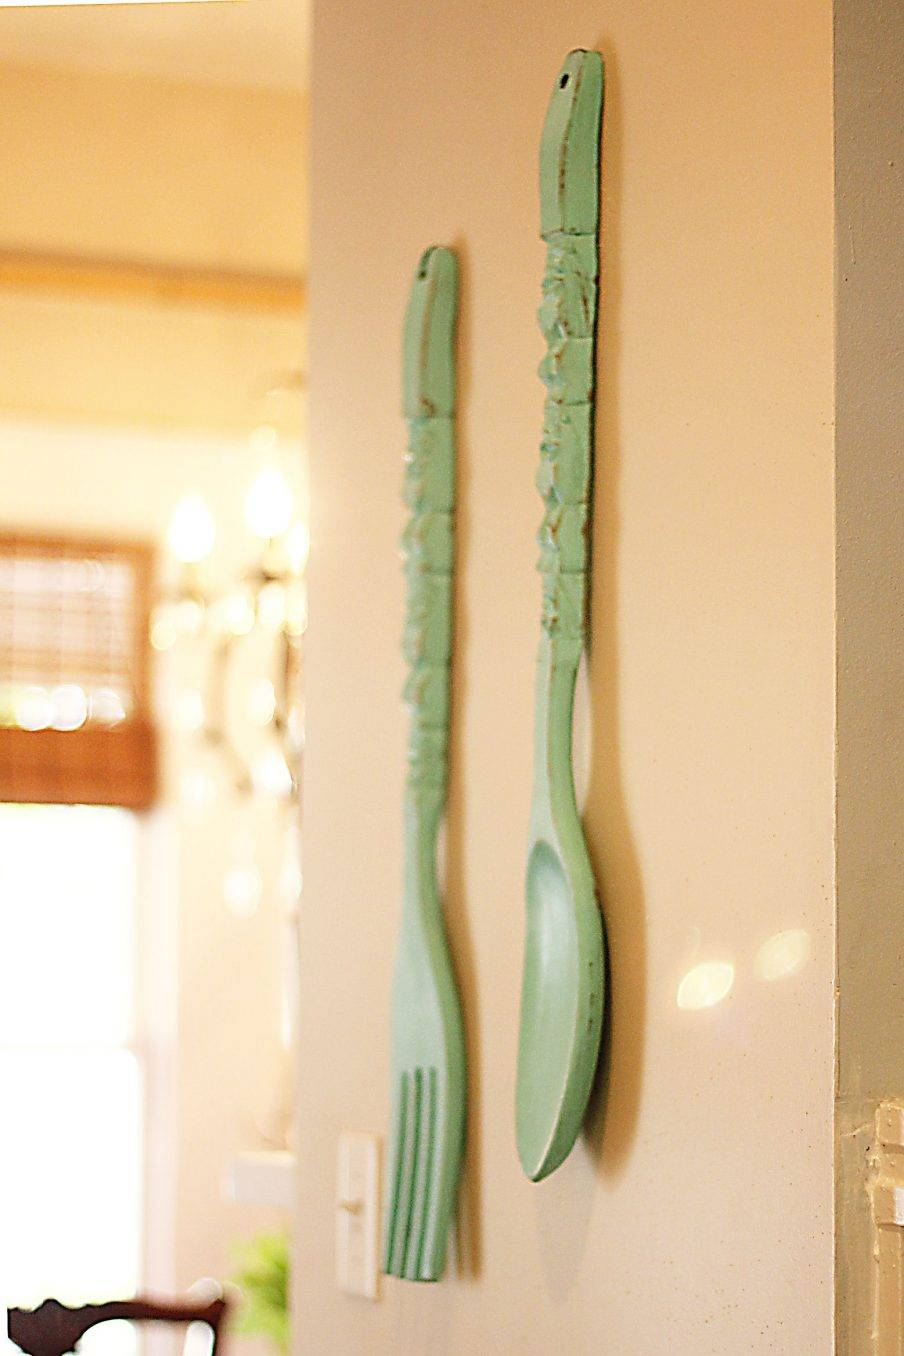 Stupendous Giant Fork Wall Decor Image Of Oversized Spoon Fork Pertaining To Most Up To Date Big Spoon And Fork Wall Decor (View 16 of 30)